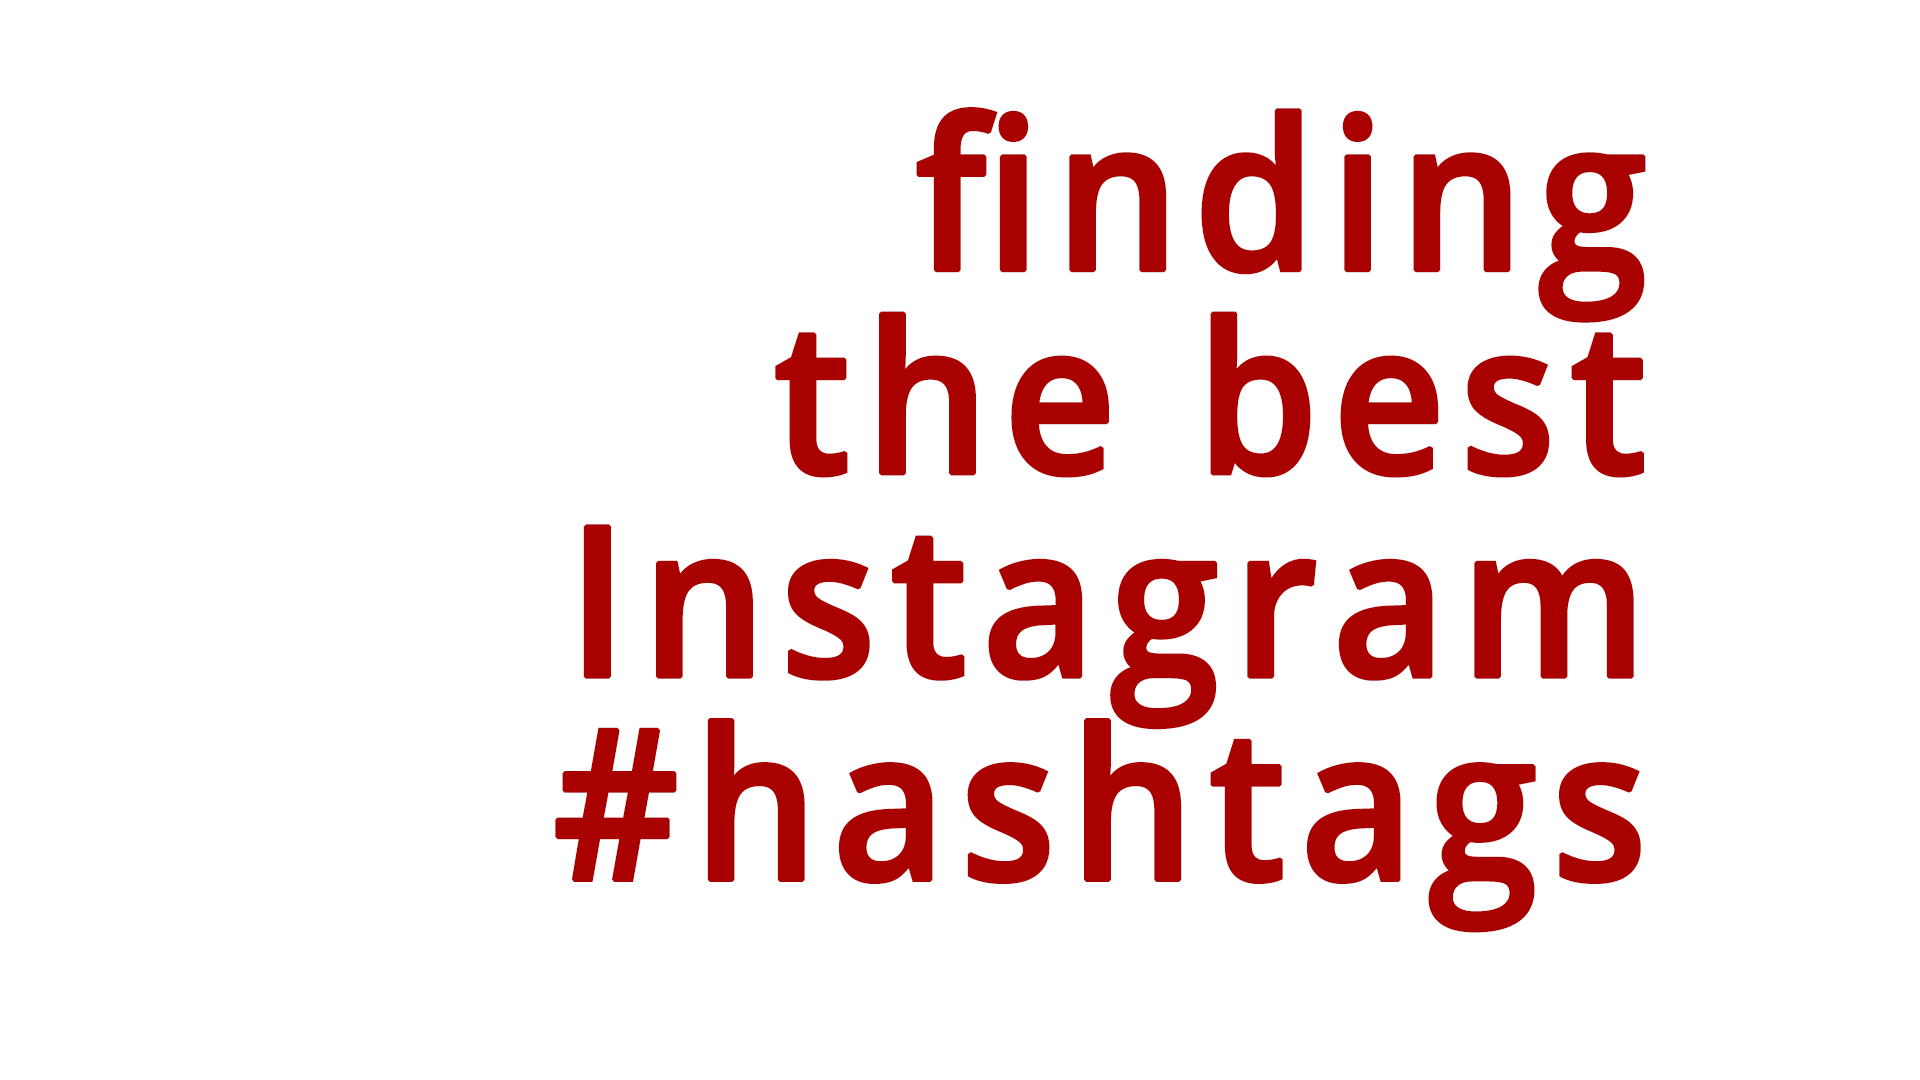 Cover image for the post on how to find the best instagram hashtags